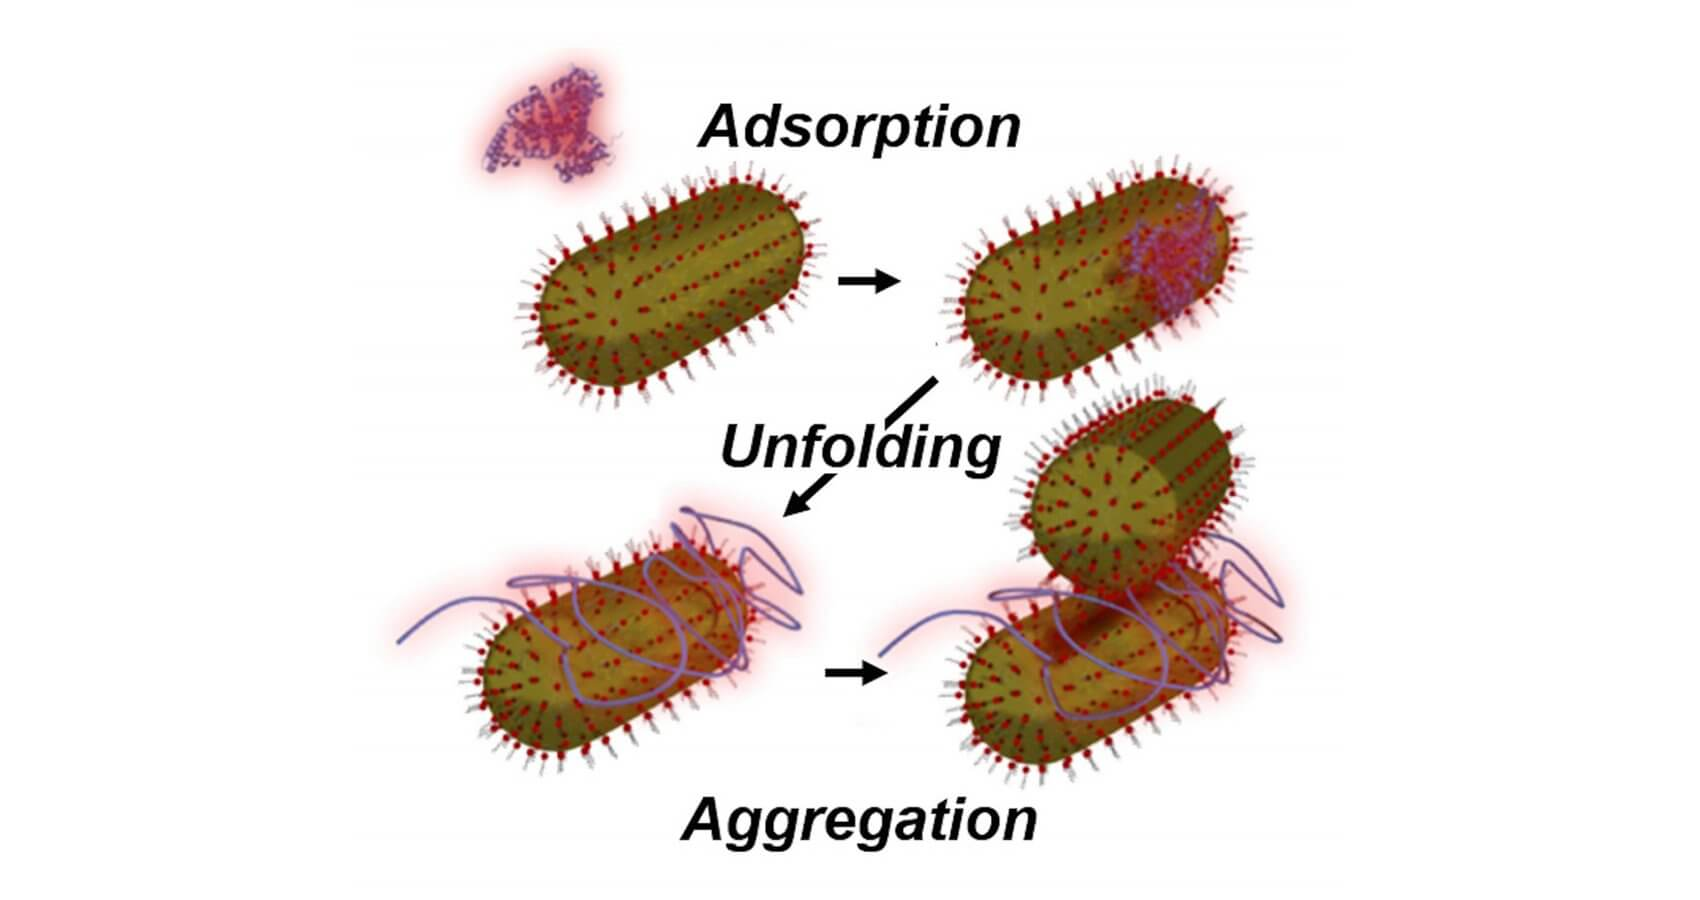 Rice University researchers observed nanoparticle aggregation induced by low concentrations of unfolded serum albumin proteins. They believe the proteins unfold upon binding to gold nanoparticles and prevent other proteins from joining them to form a protective casing around the particle.